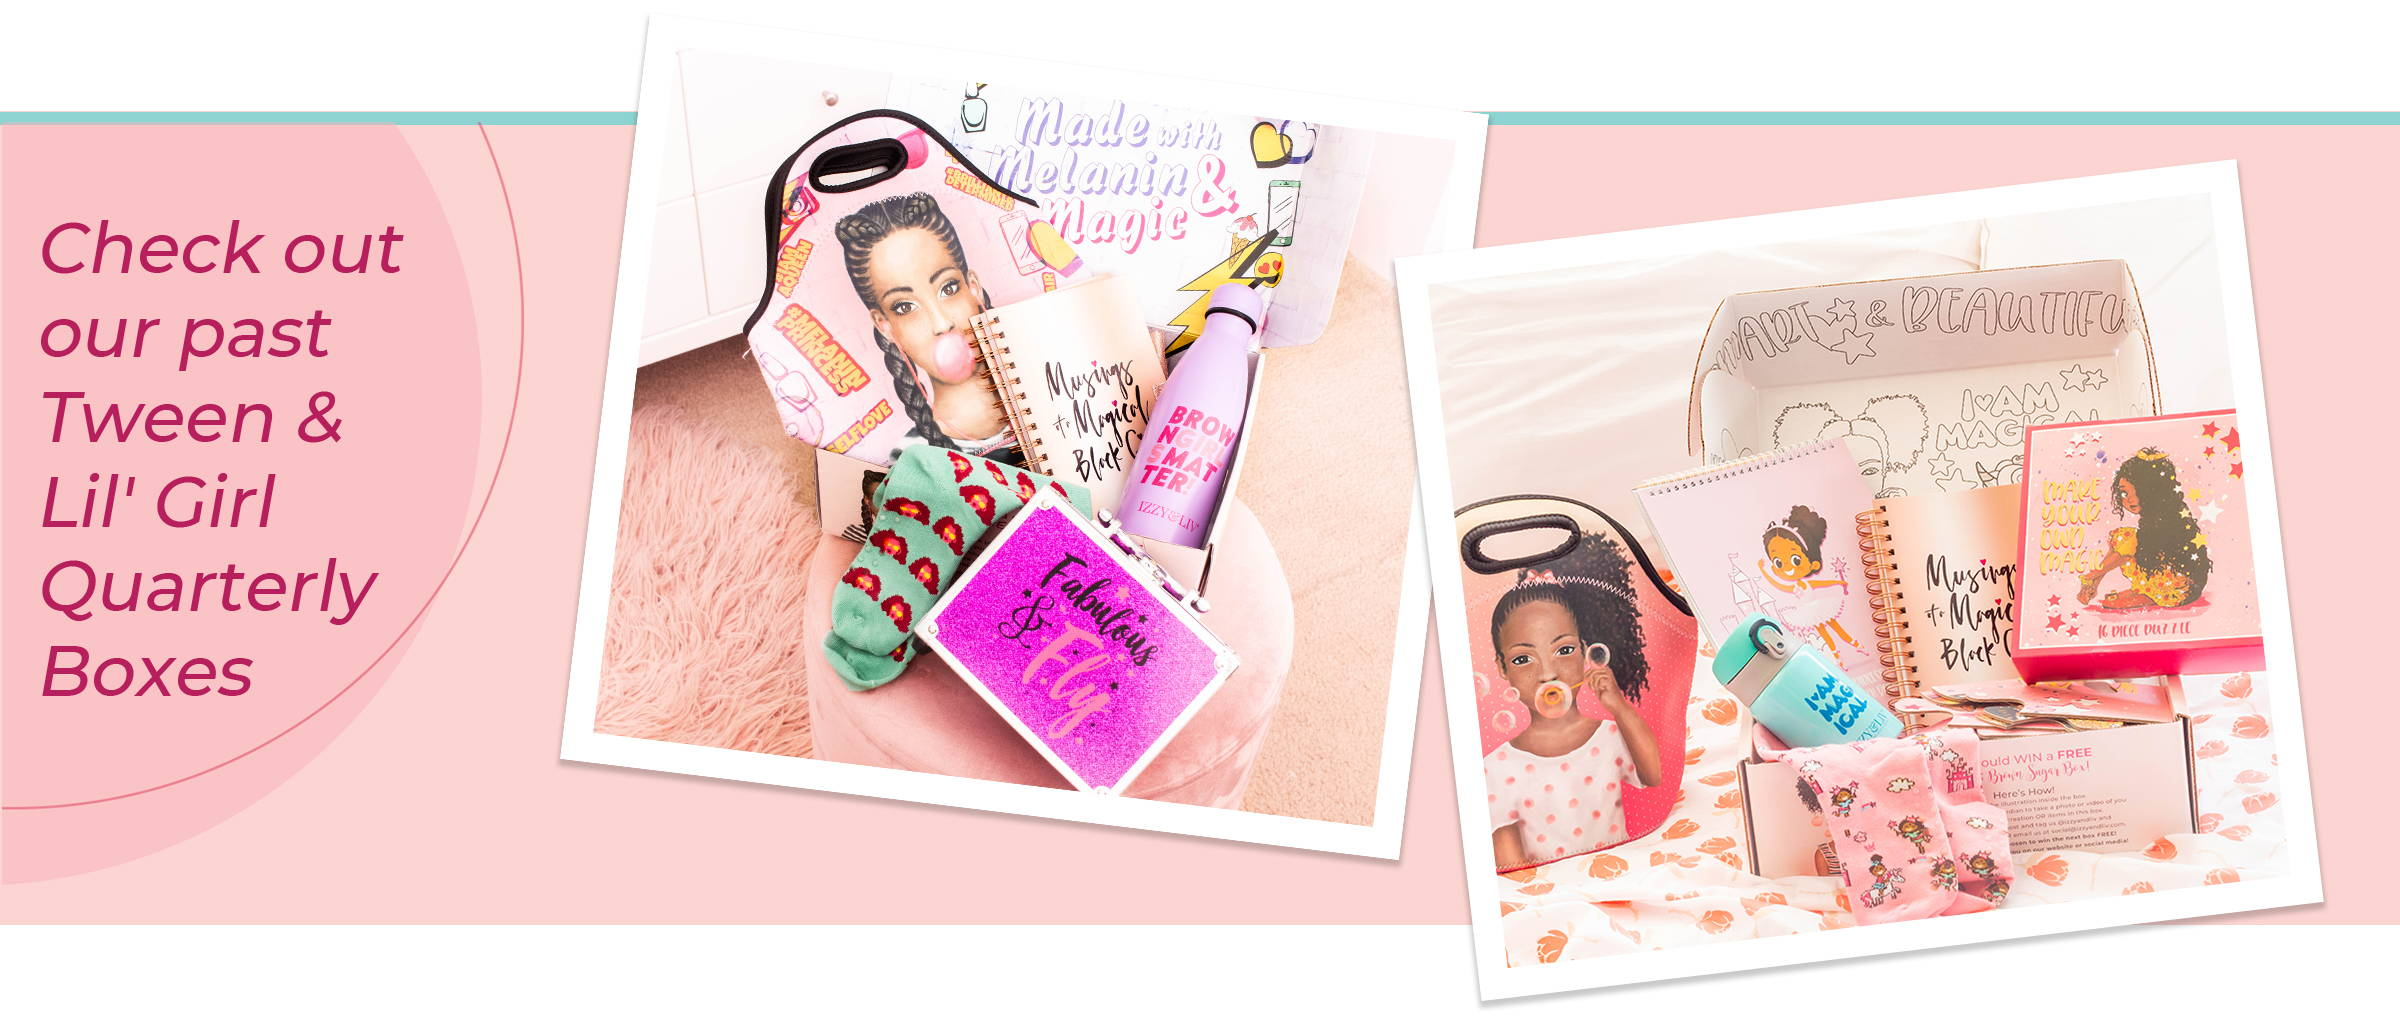 Check Out Our Past Tween & Lil Girl Quarterly Boxes!